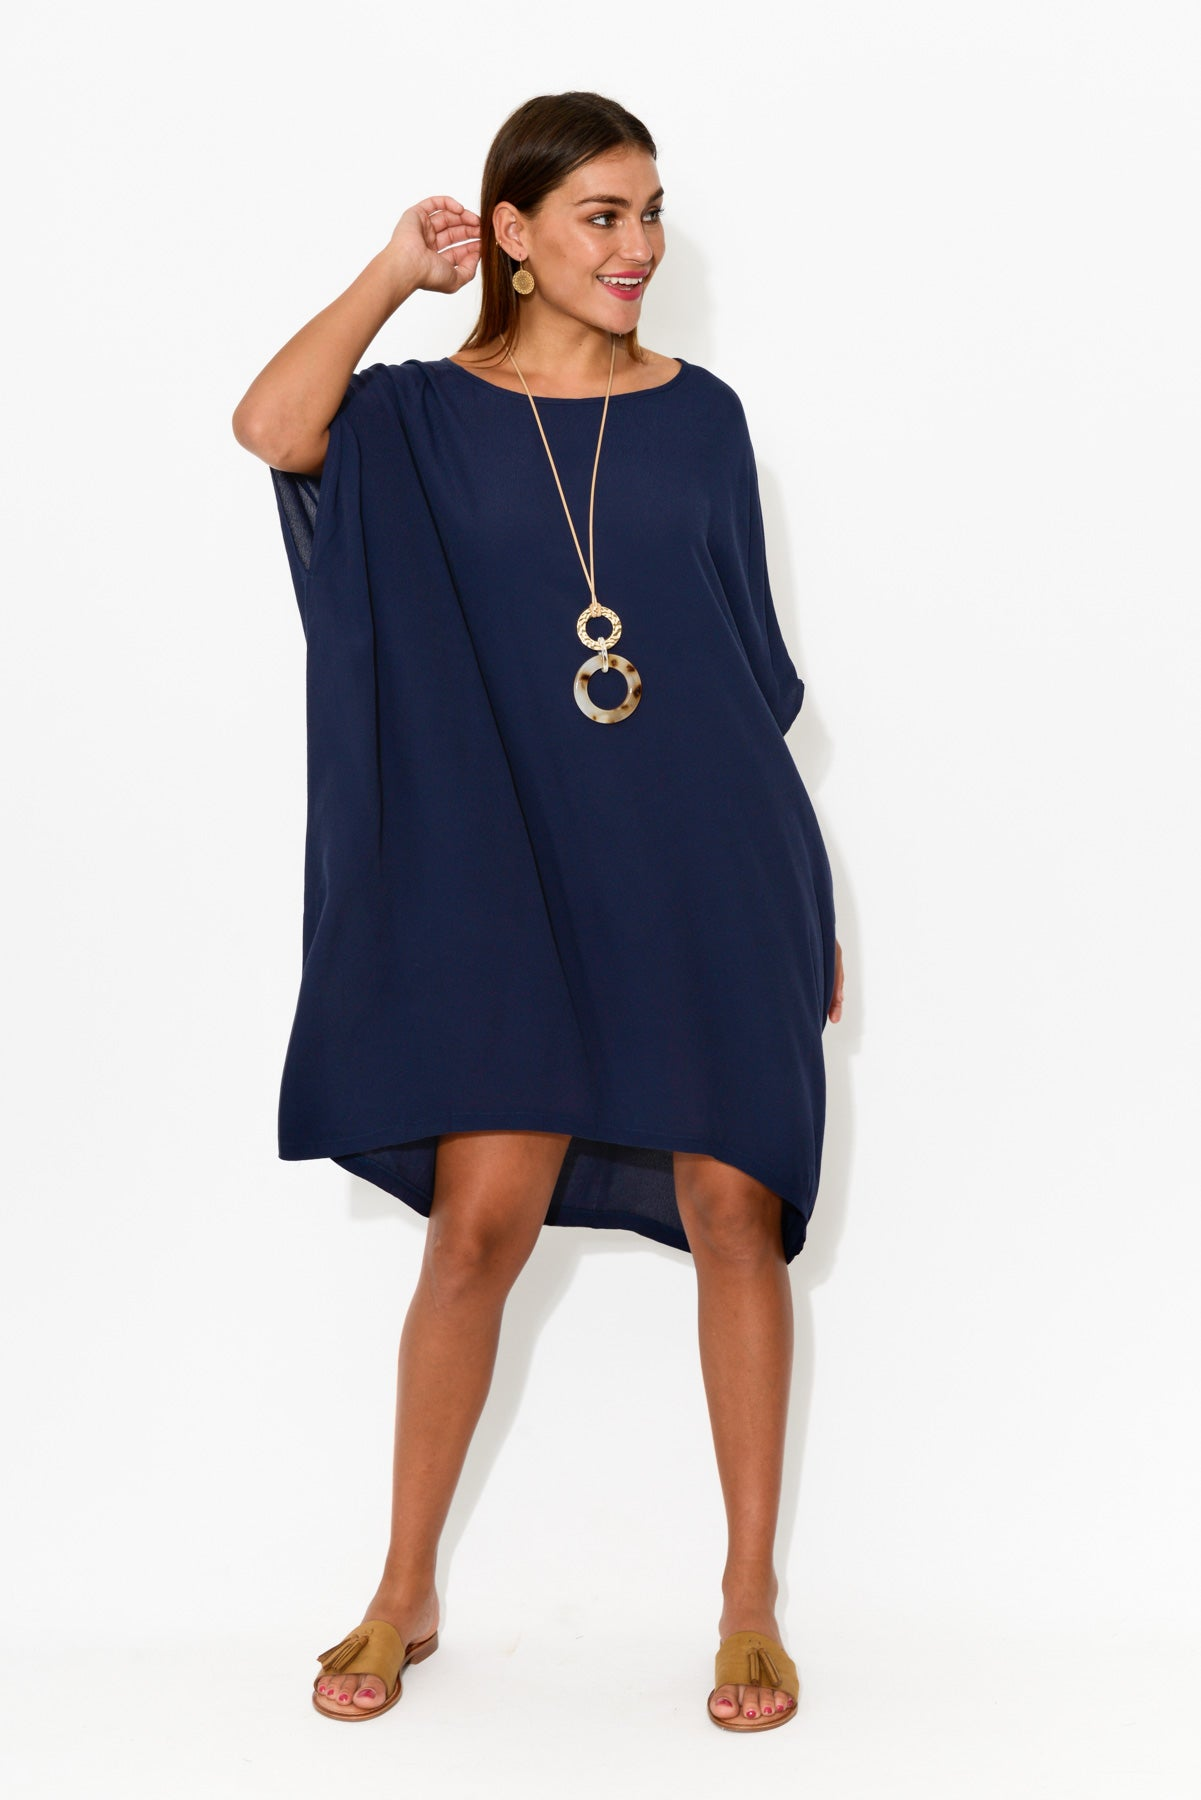 Zola Navy Drape Dress